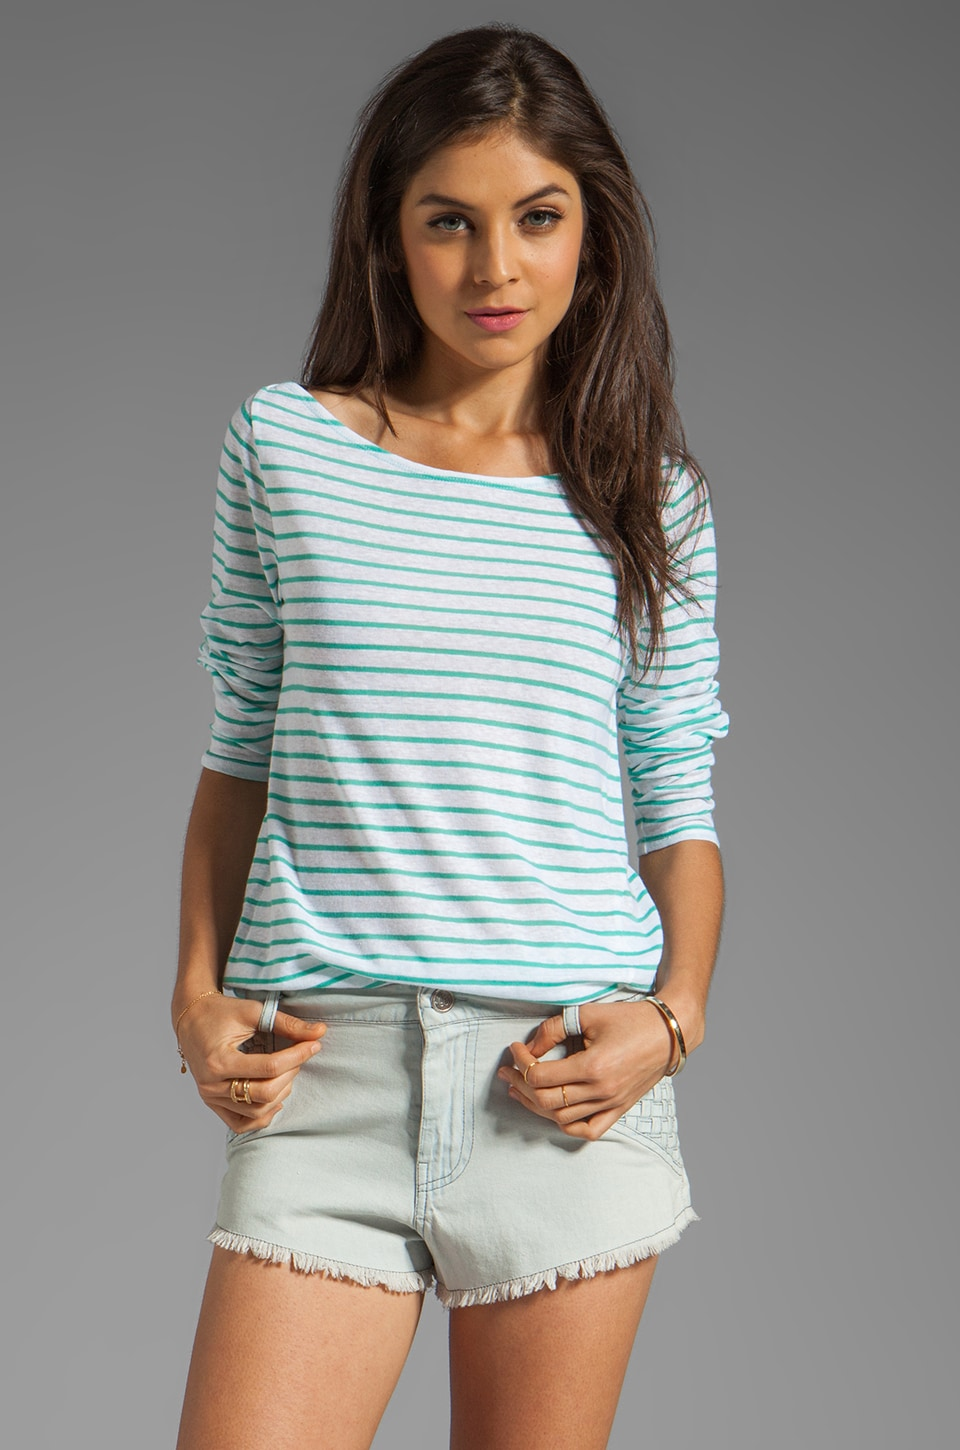 Whetherly Griffin Sheer Stripe Top in Mist/White